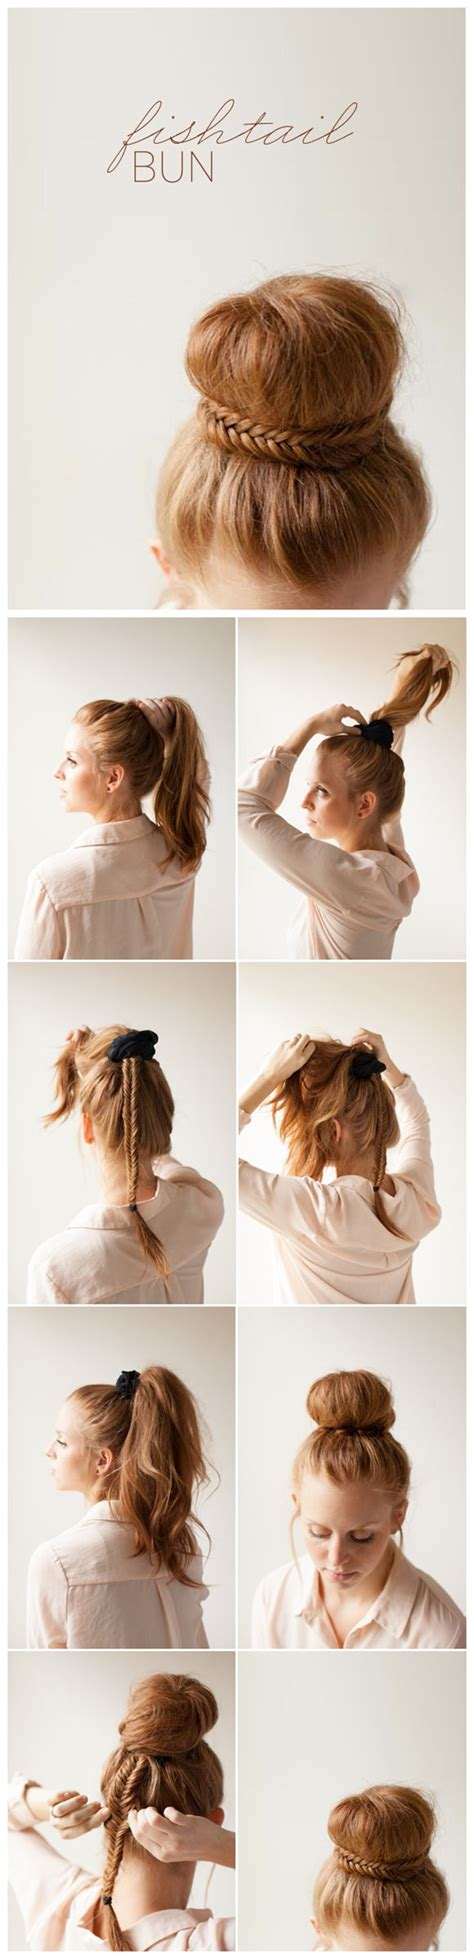 cute diy hairstyles easy 25 cute diy bun hairstyles